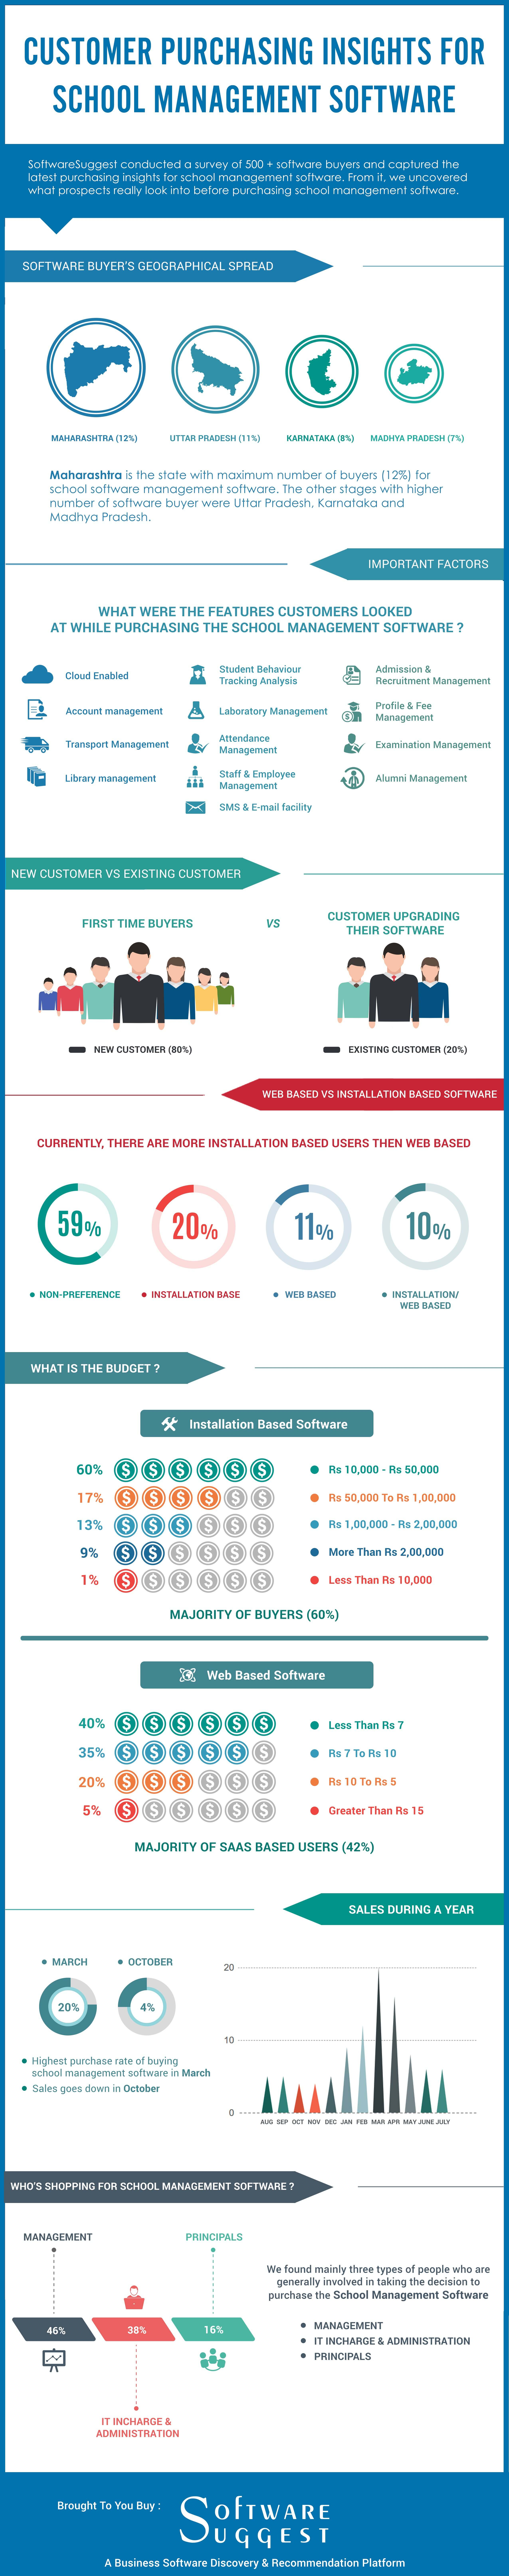 Customer Purchasing Insights for School Software - Infographic